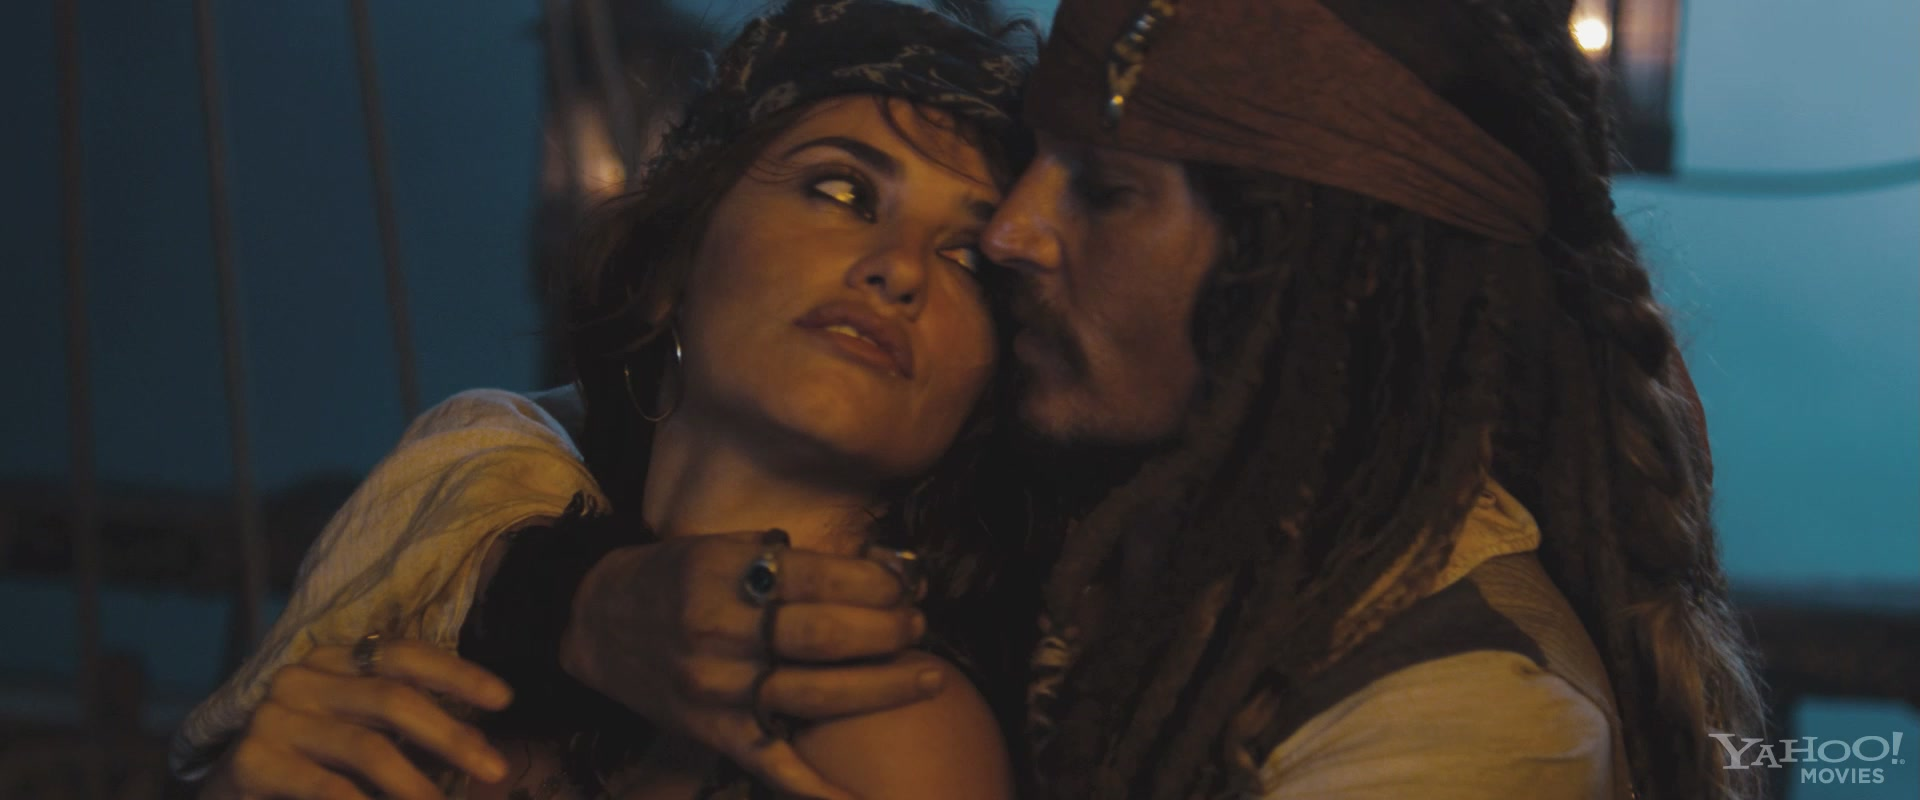 jack sparrow and angelica relationship